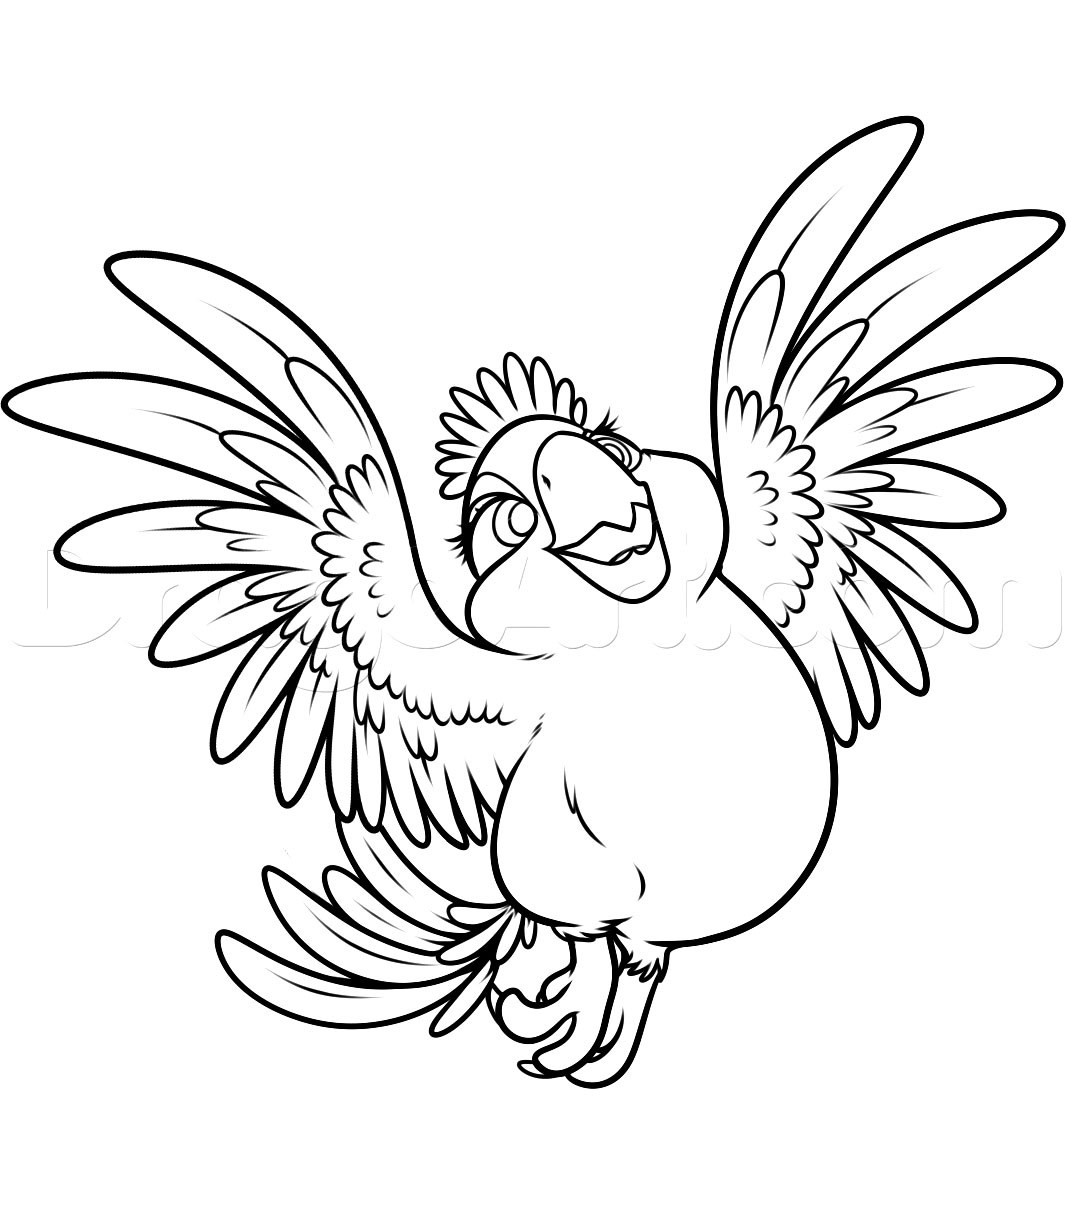 Rio to print for free - Rio Kids Coloring Pages | 1205x1067